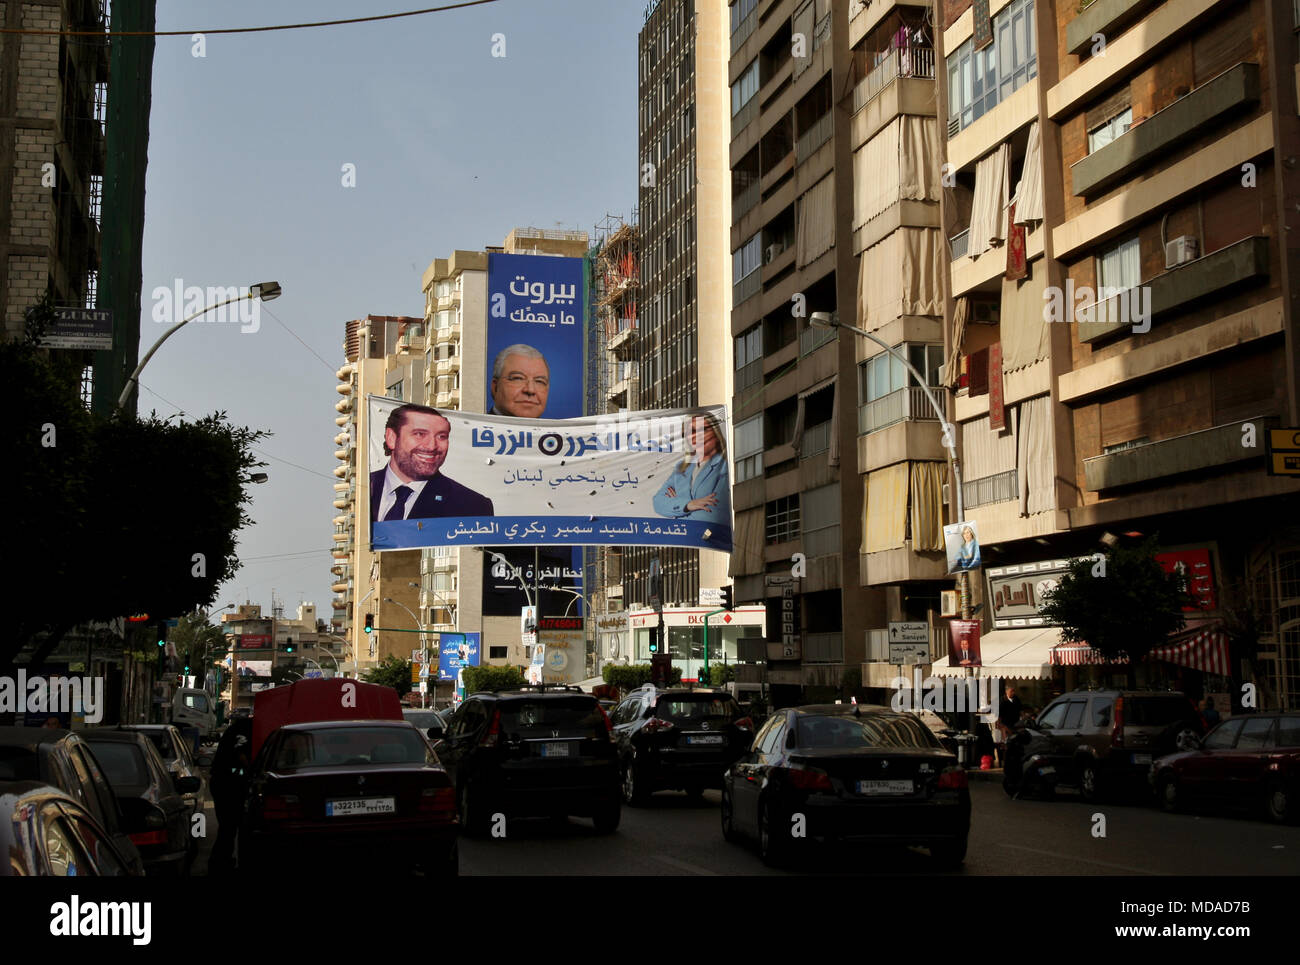 https://c8.alamy.com/comp/MDAD7B/beirut-lebanon-18th-apr-2018-campaign-posters-of-lebanese-prime-minister-saad-hariri-front-and-interior-minister-nohad-al-machnouk-back-hanging-in-a-street-ahead-of-the-lebanese-parliamentary-elections-in-beirut-lebanon-18-april-2018-after-years-of-political-deadlock-lebanons-struggling-democratic-institutions-have-managed-to-overcome-sectarian-divisions-to-adopt-a-long-awaited-electoral-law-and-put-in-place-preparations-for-upcoming-parliamentary-elections-in-may-2018-credit-marwan-naamanidpaalamy-live-news-MDAD7B.jpg